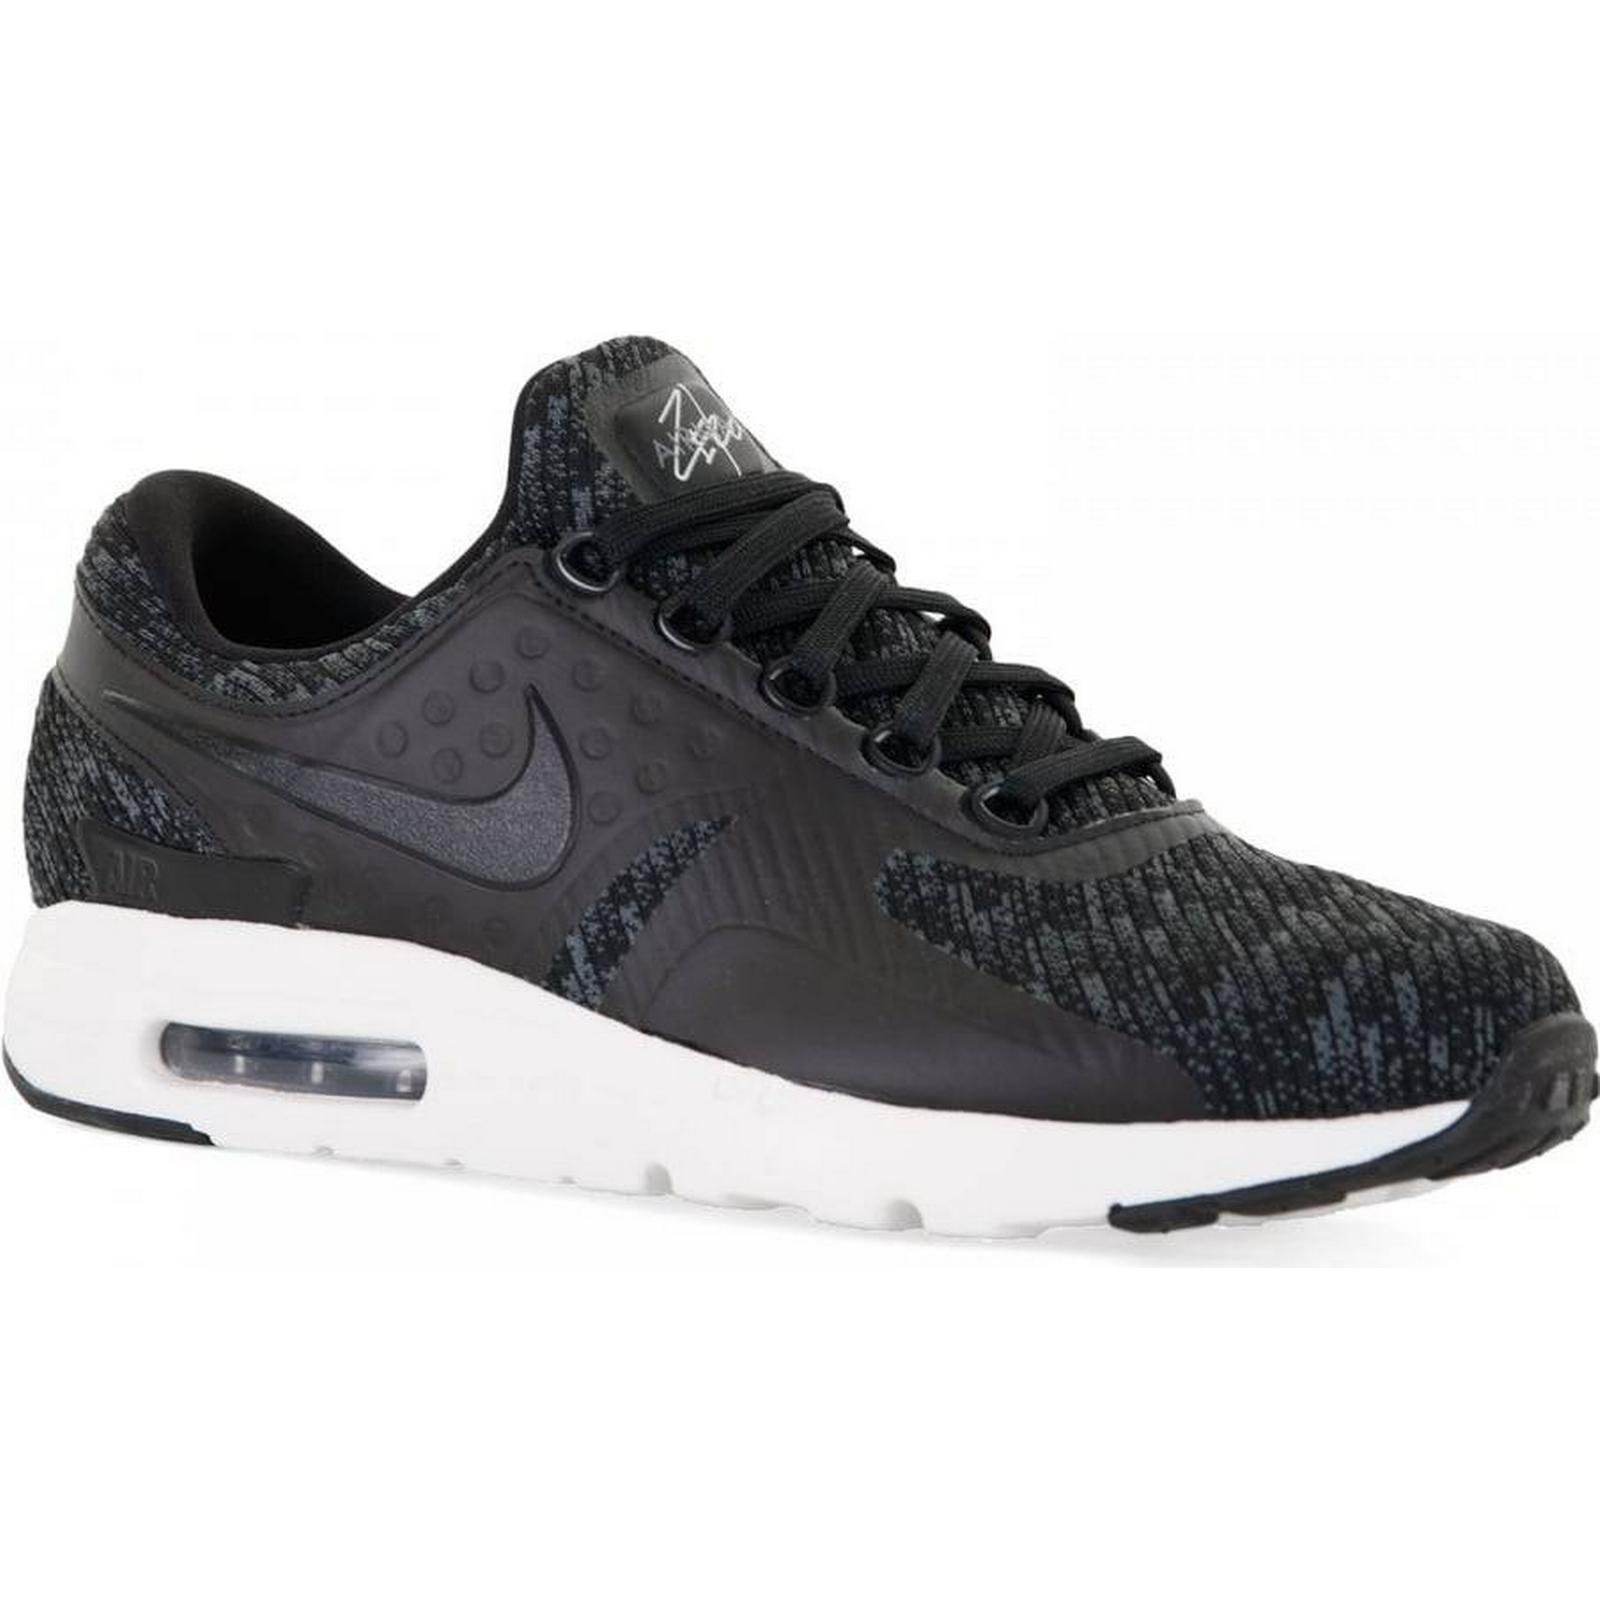 mens nike air max trainers size 8